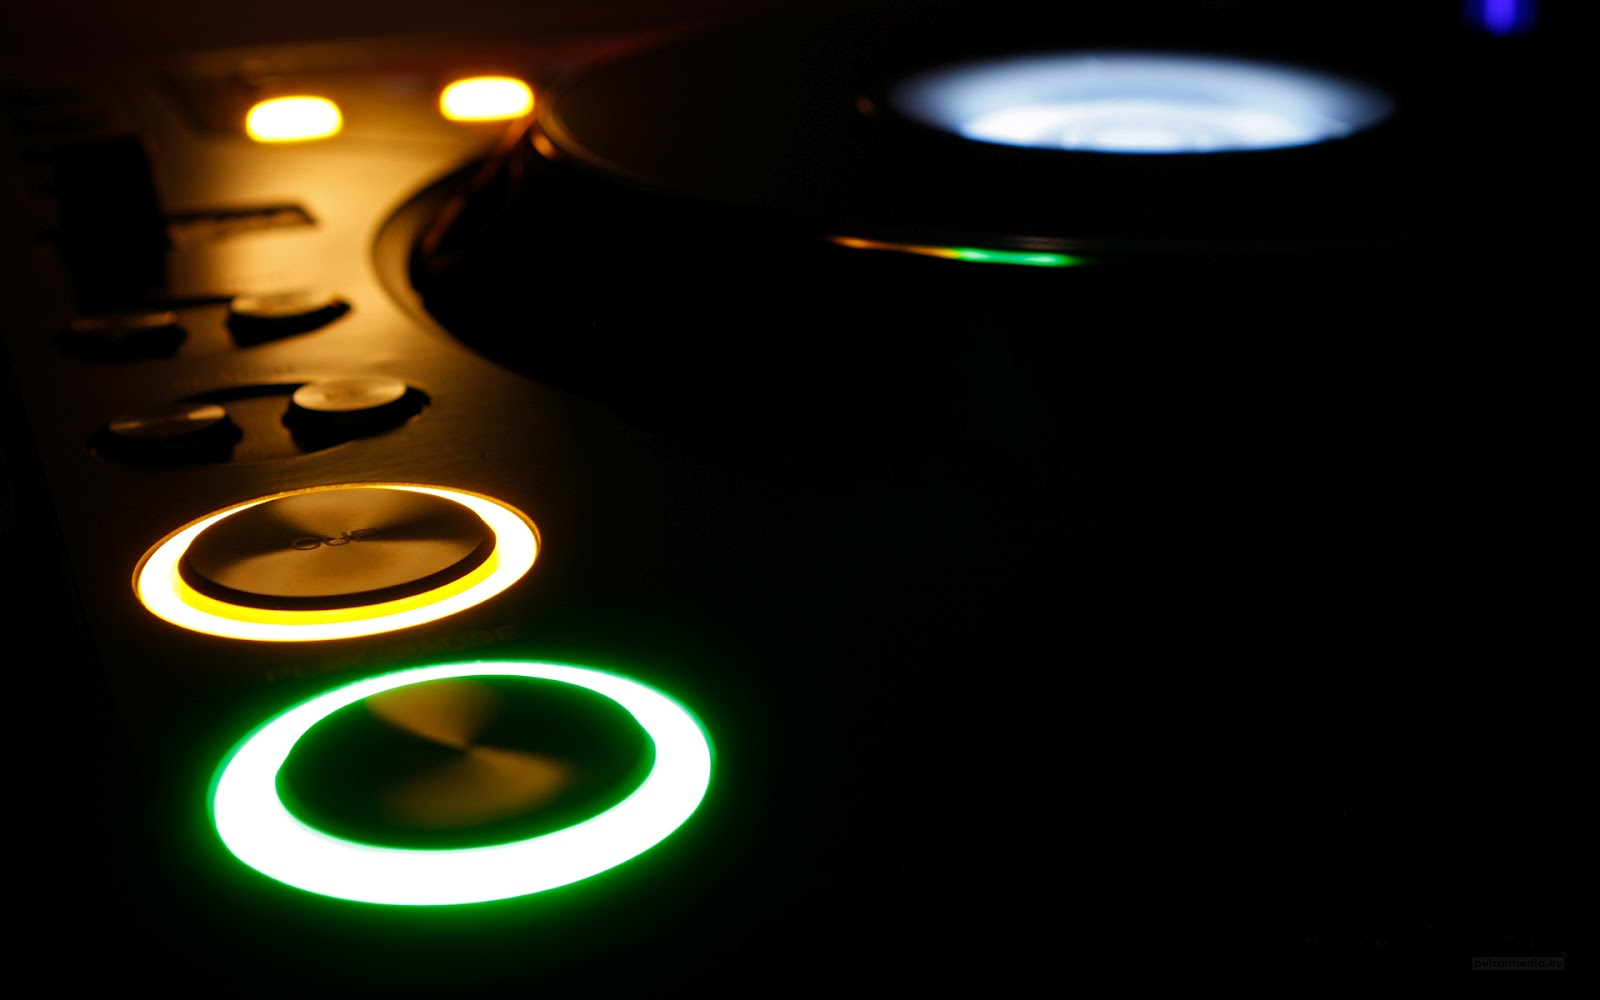 http://3.bp.blogspot.com/-7LrtOS69IM4/T-sHLX9c7vI/AAAAAAAAACs/dRLC6vWb4xs/s1600/music_dark_djs_club_turntable_dj_cdj_cd_cdj1000_pioneer_desktop_1920x1200_wallpaper-12635.jpg